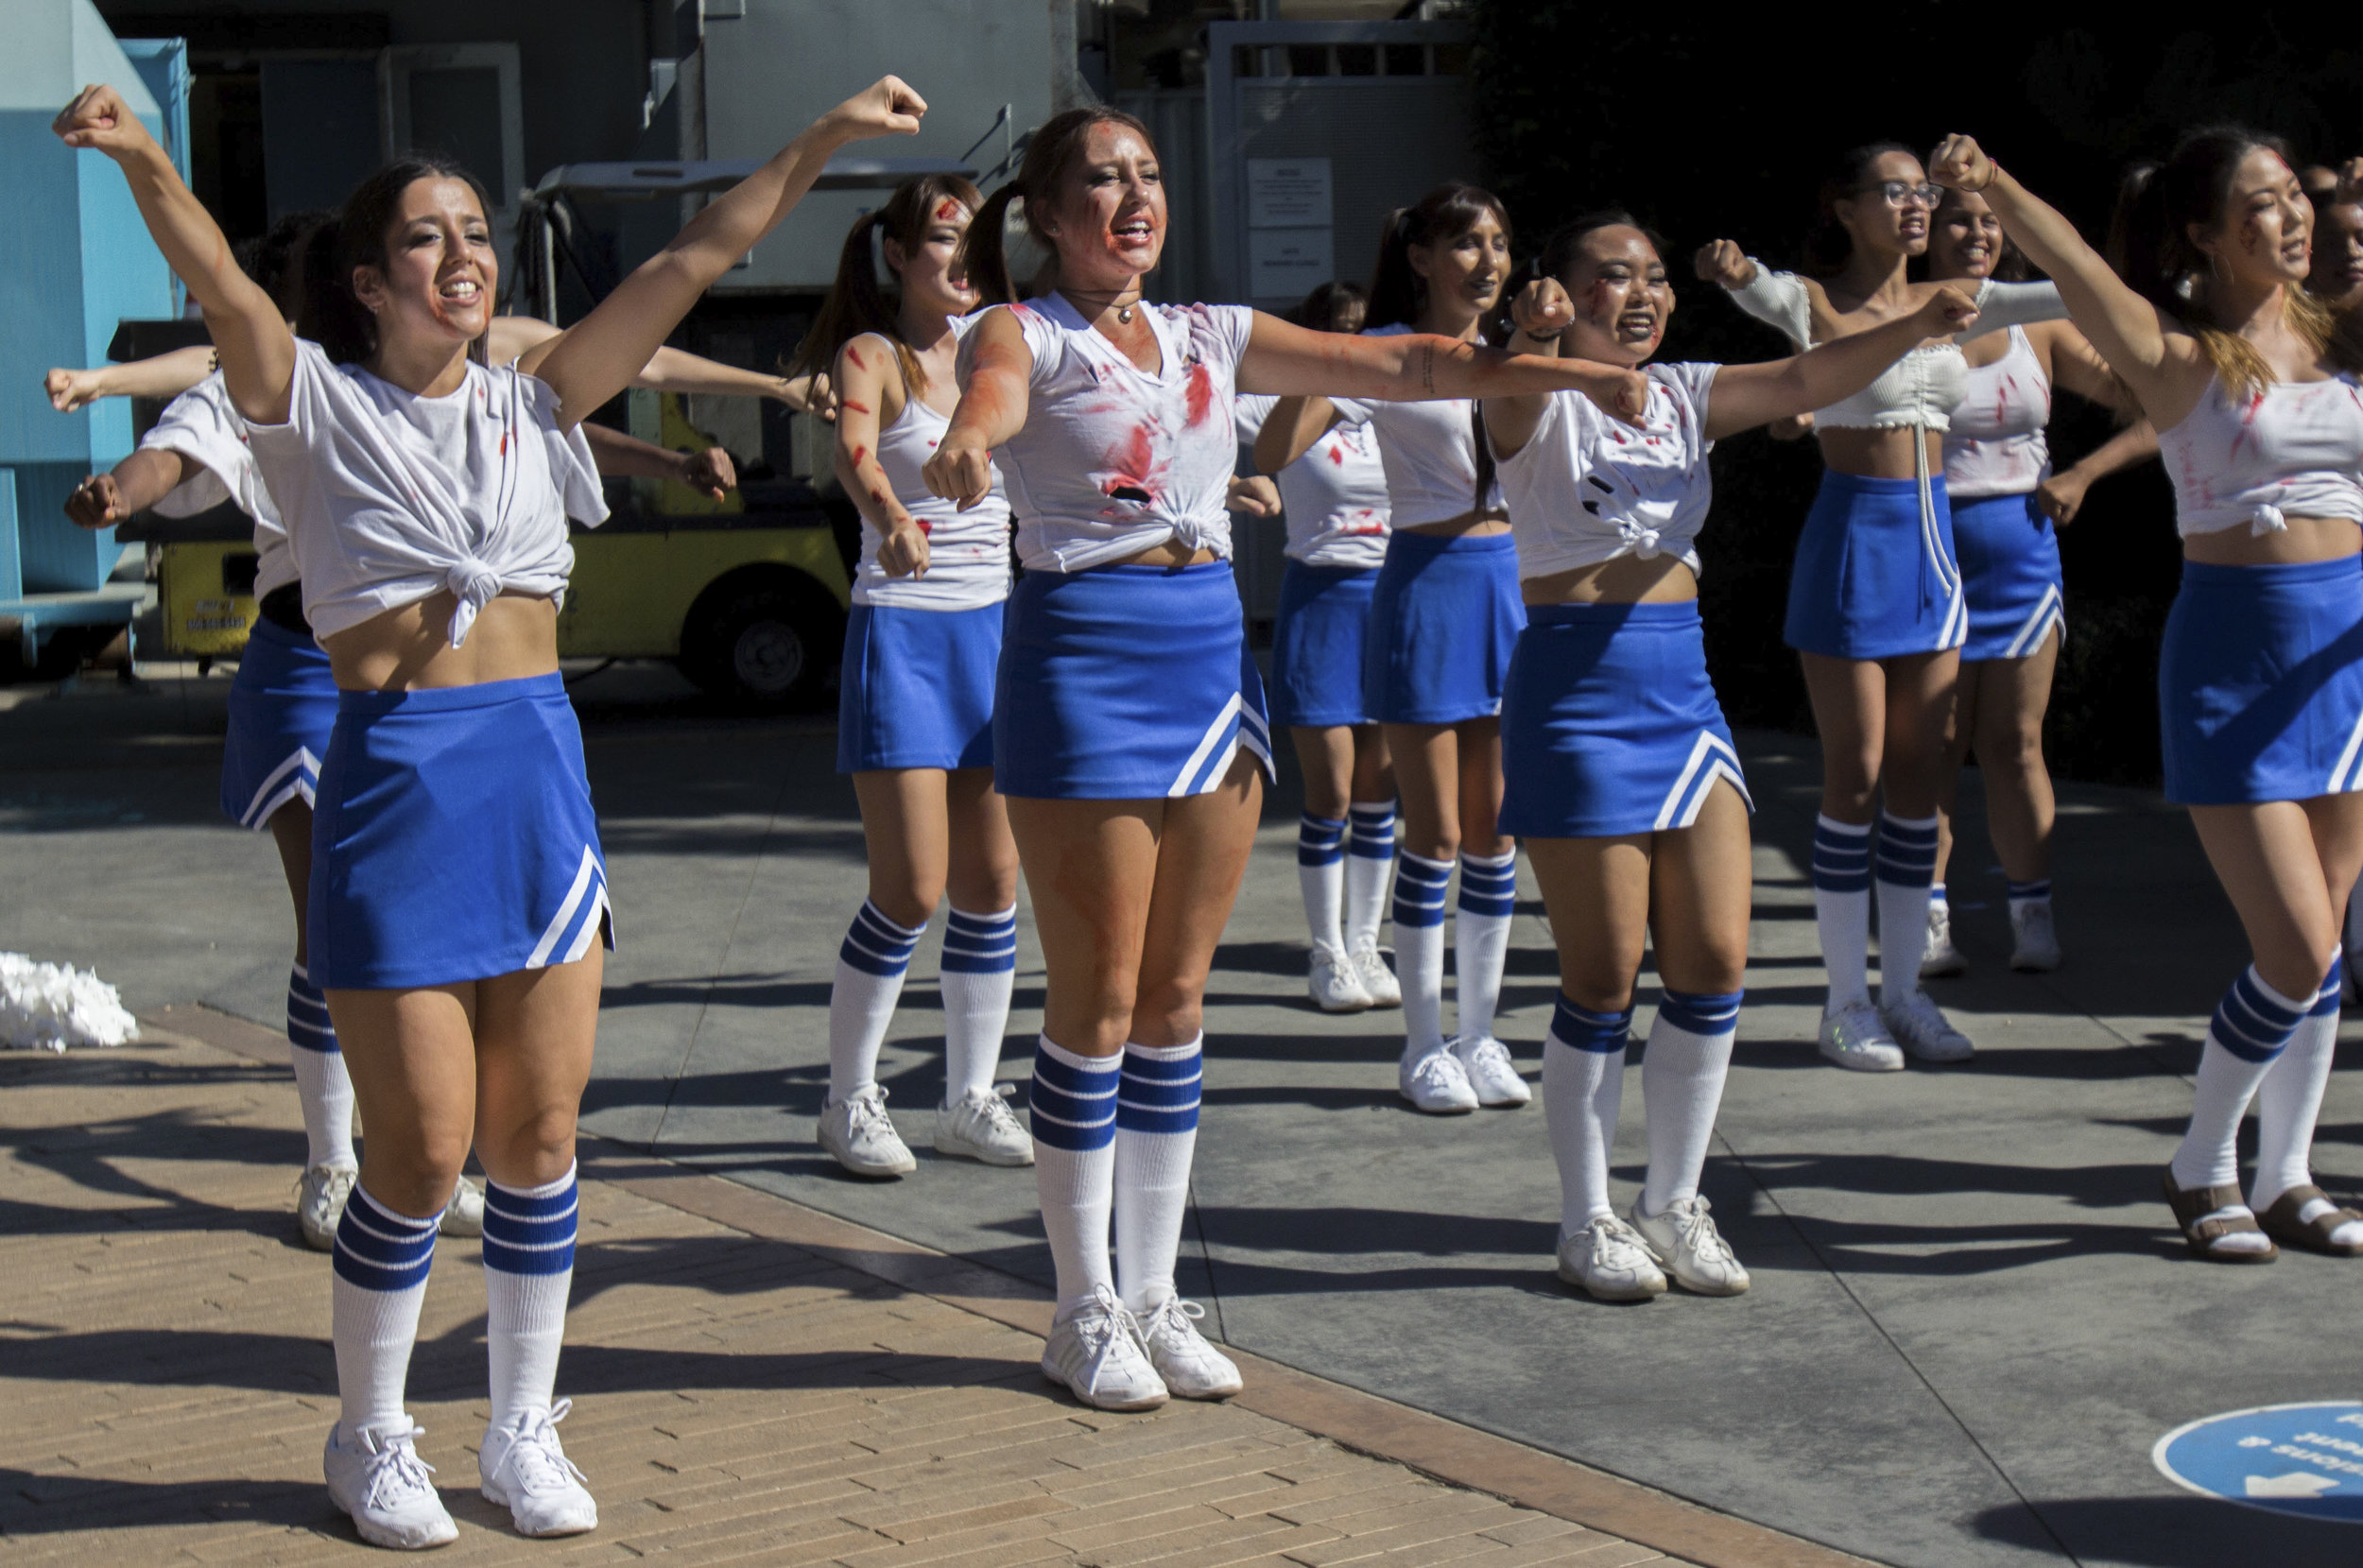 Members of the Cheer Club performing during Club Row at Santa Monica College on Thursday, October 26th, 2017 at Santa Monica, Calif. The Cheer Club gain more members compare to last year 12 member to this year 45 member. (Photo by Brian Quiroz))